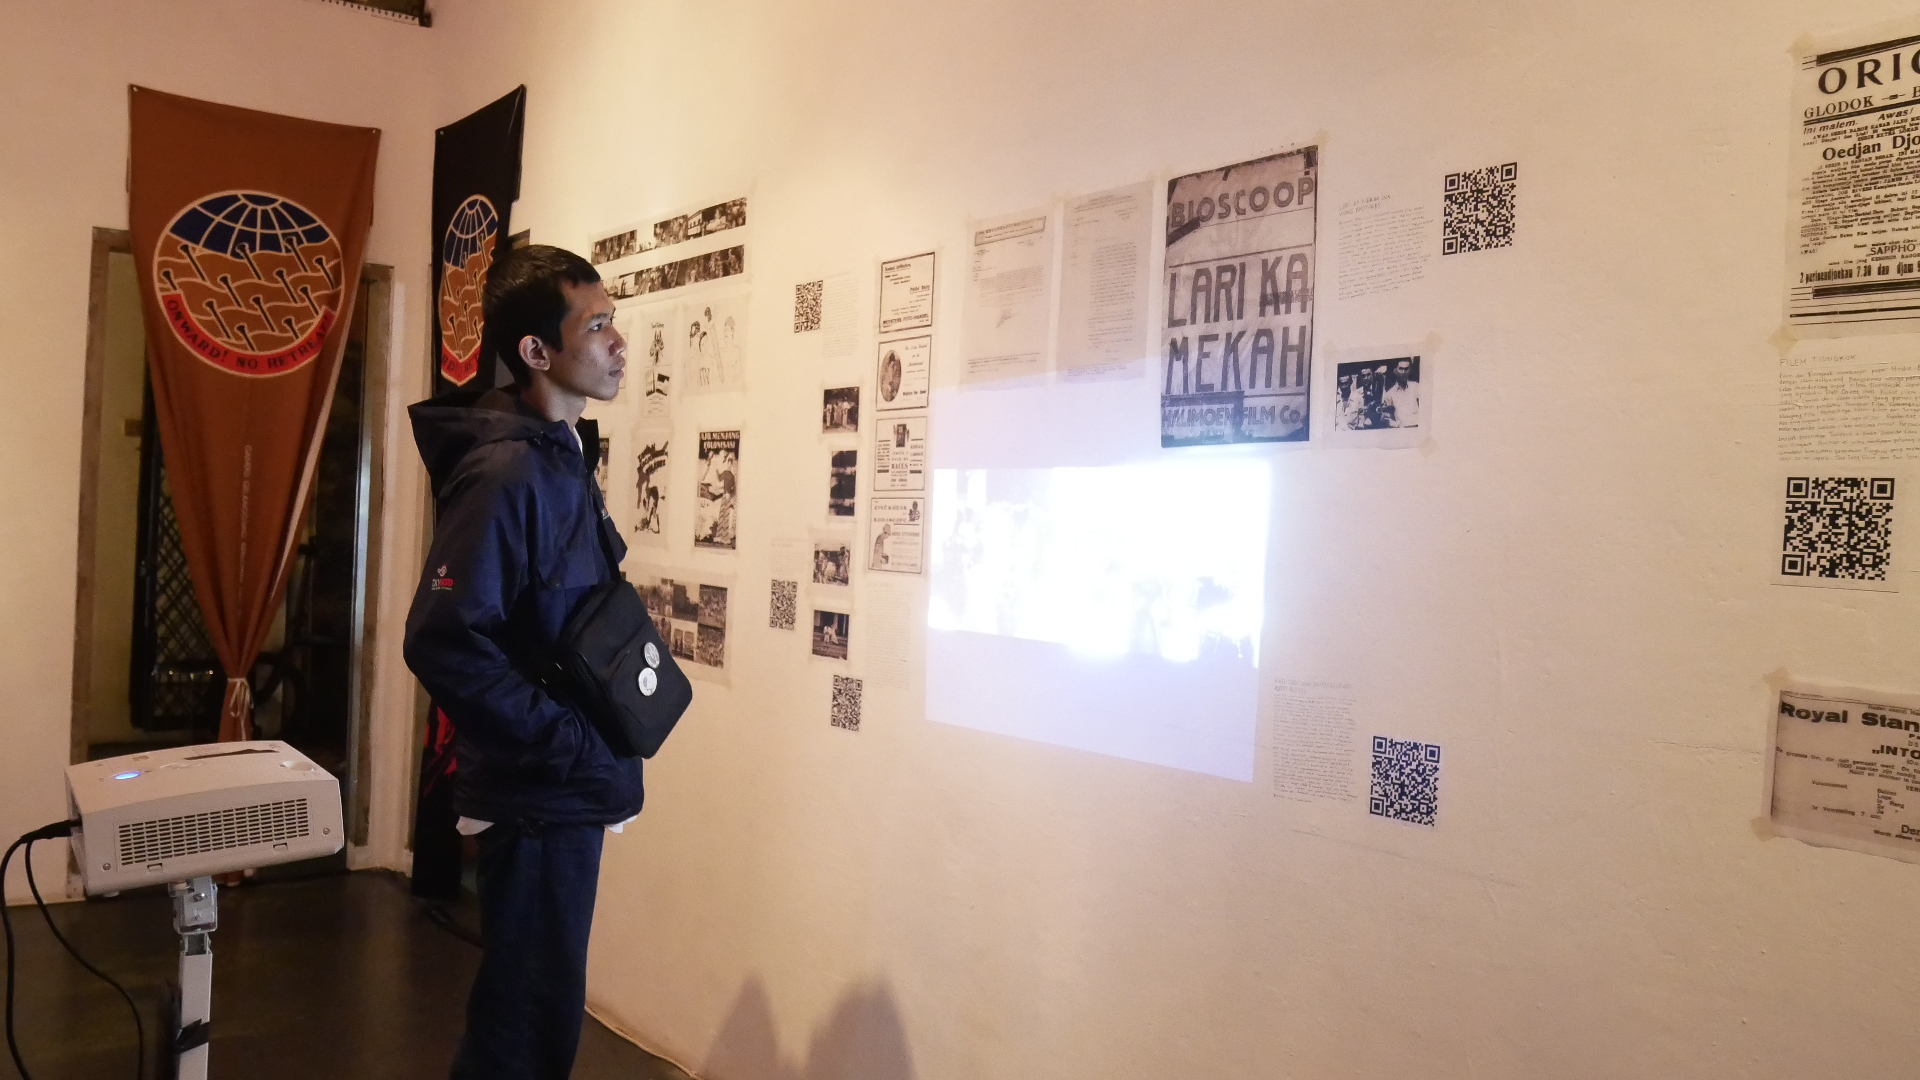 Background Ruang Kelas Kultursinema Traveling Exhibition In Yogyakarta Arkipel